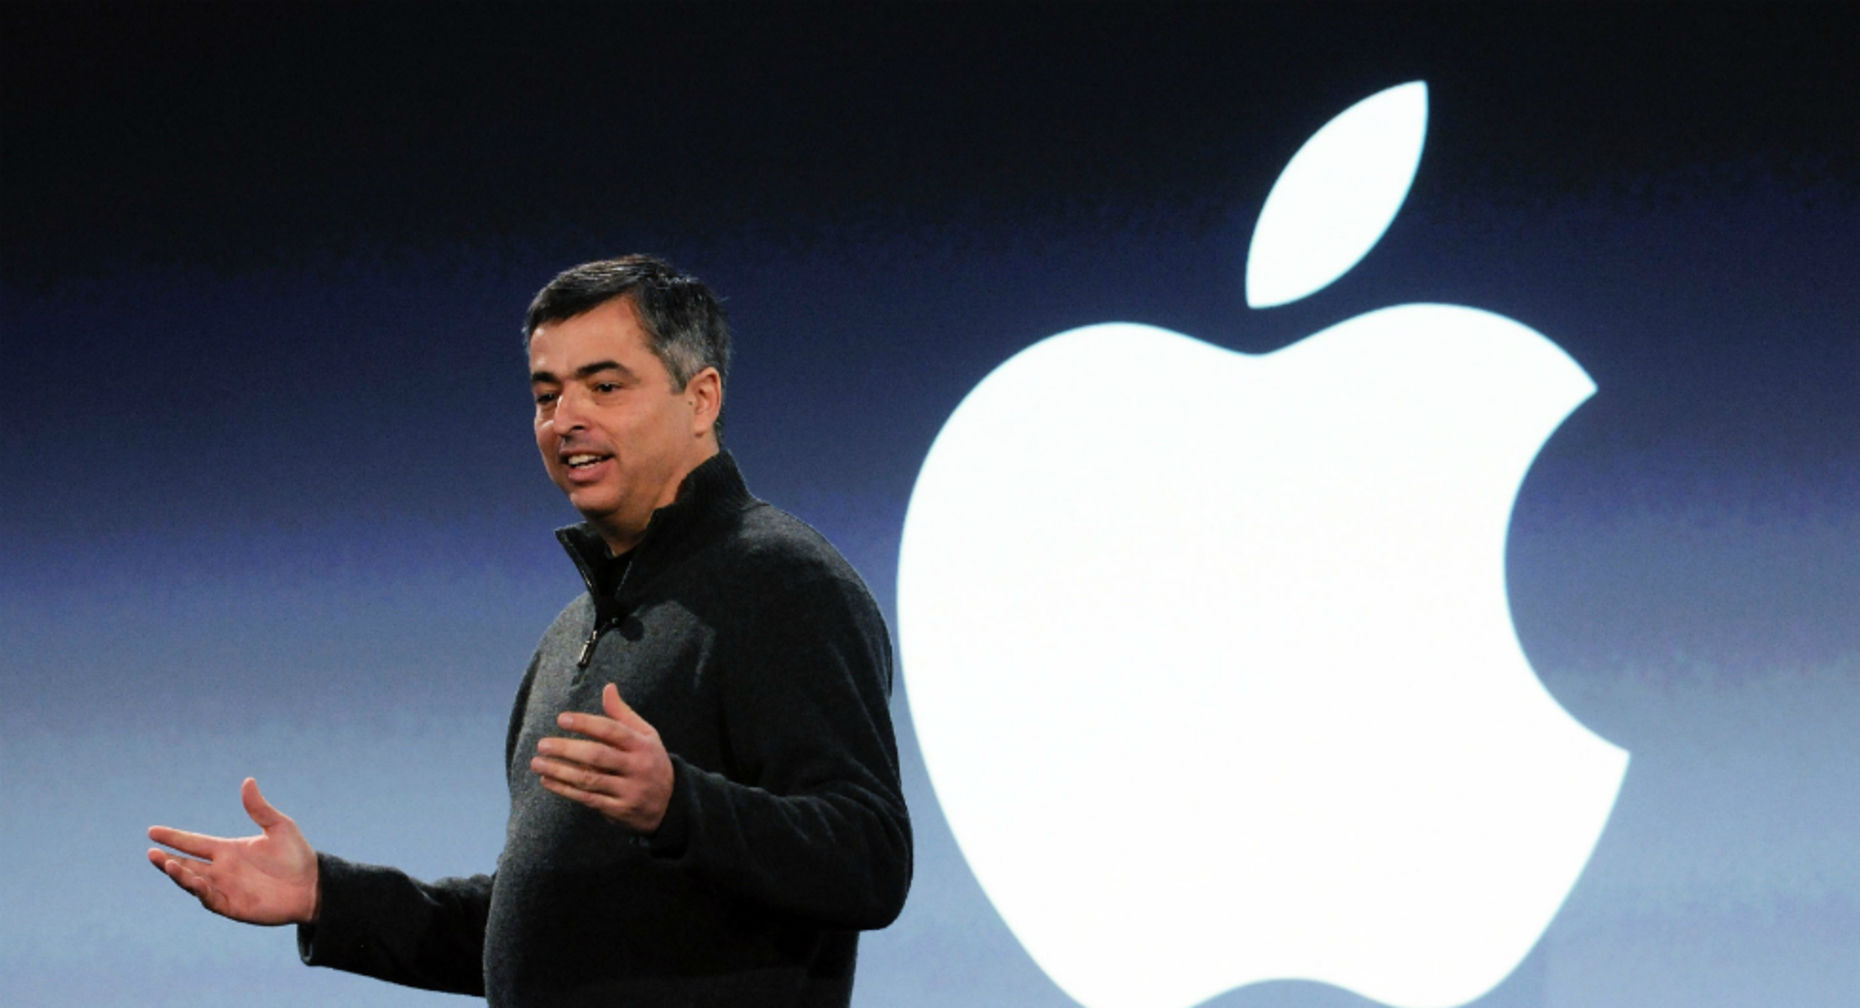 Apple senior vice president and music honcho Eddy Cue. Photo by Bloomberg.